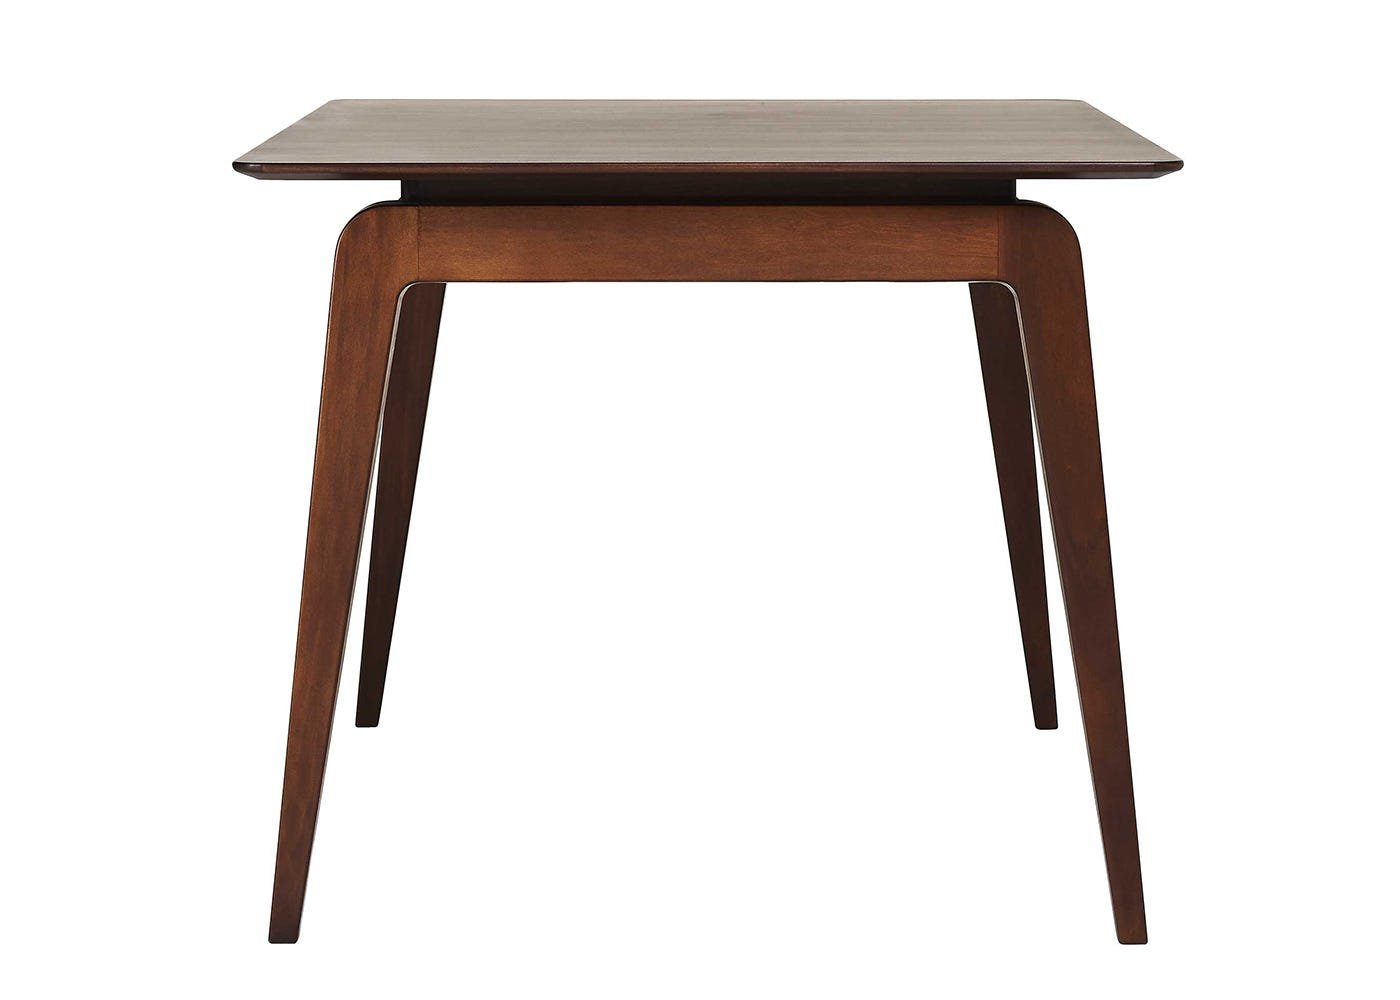 Lugo Small Dining Table - End View